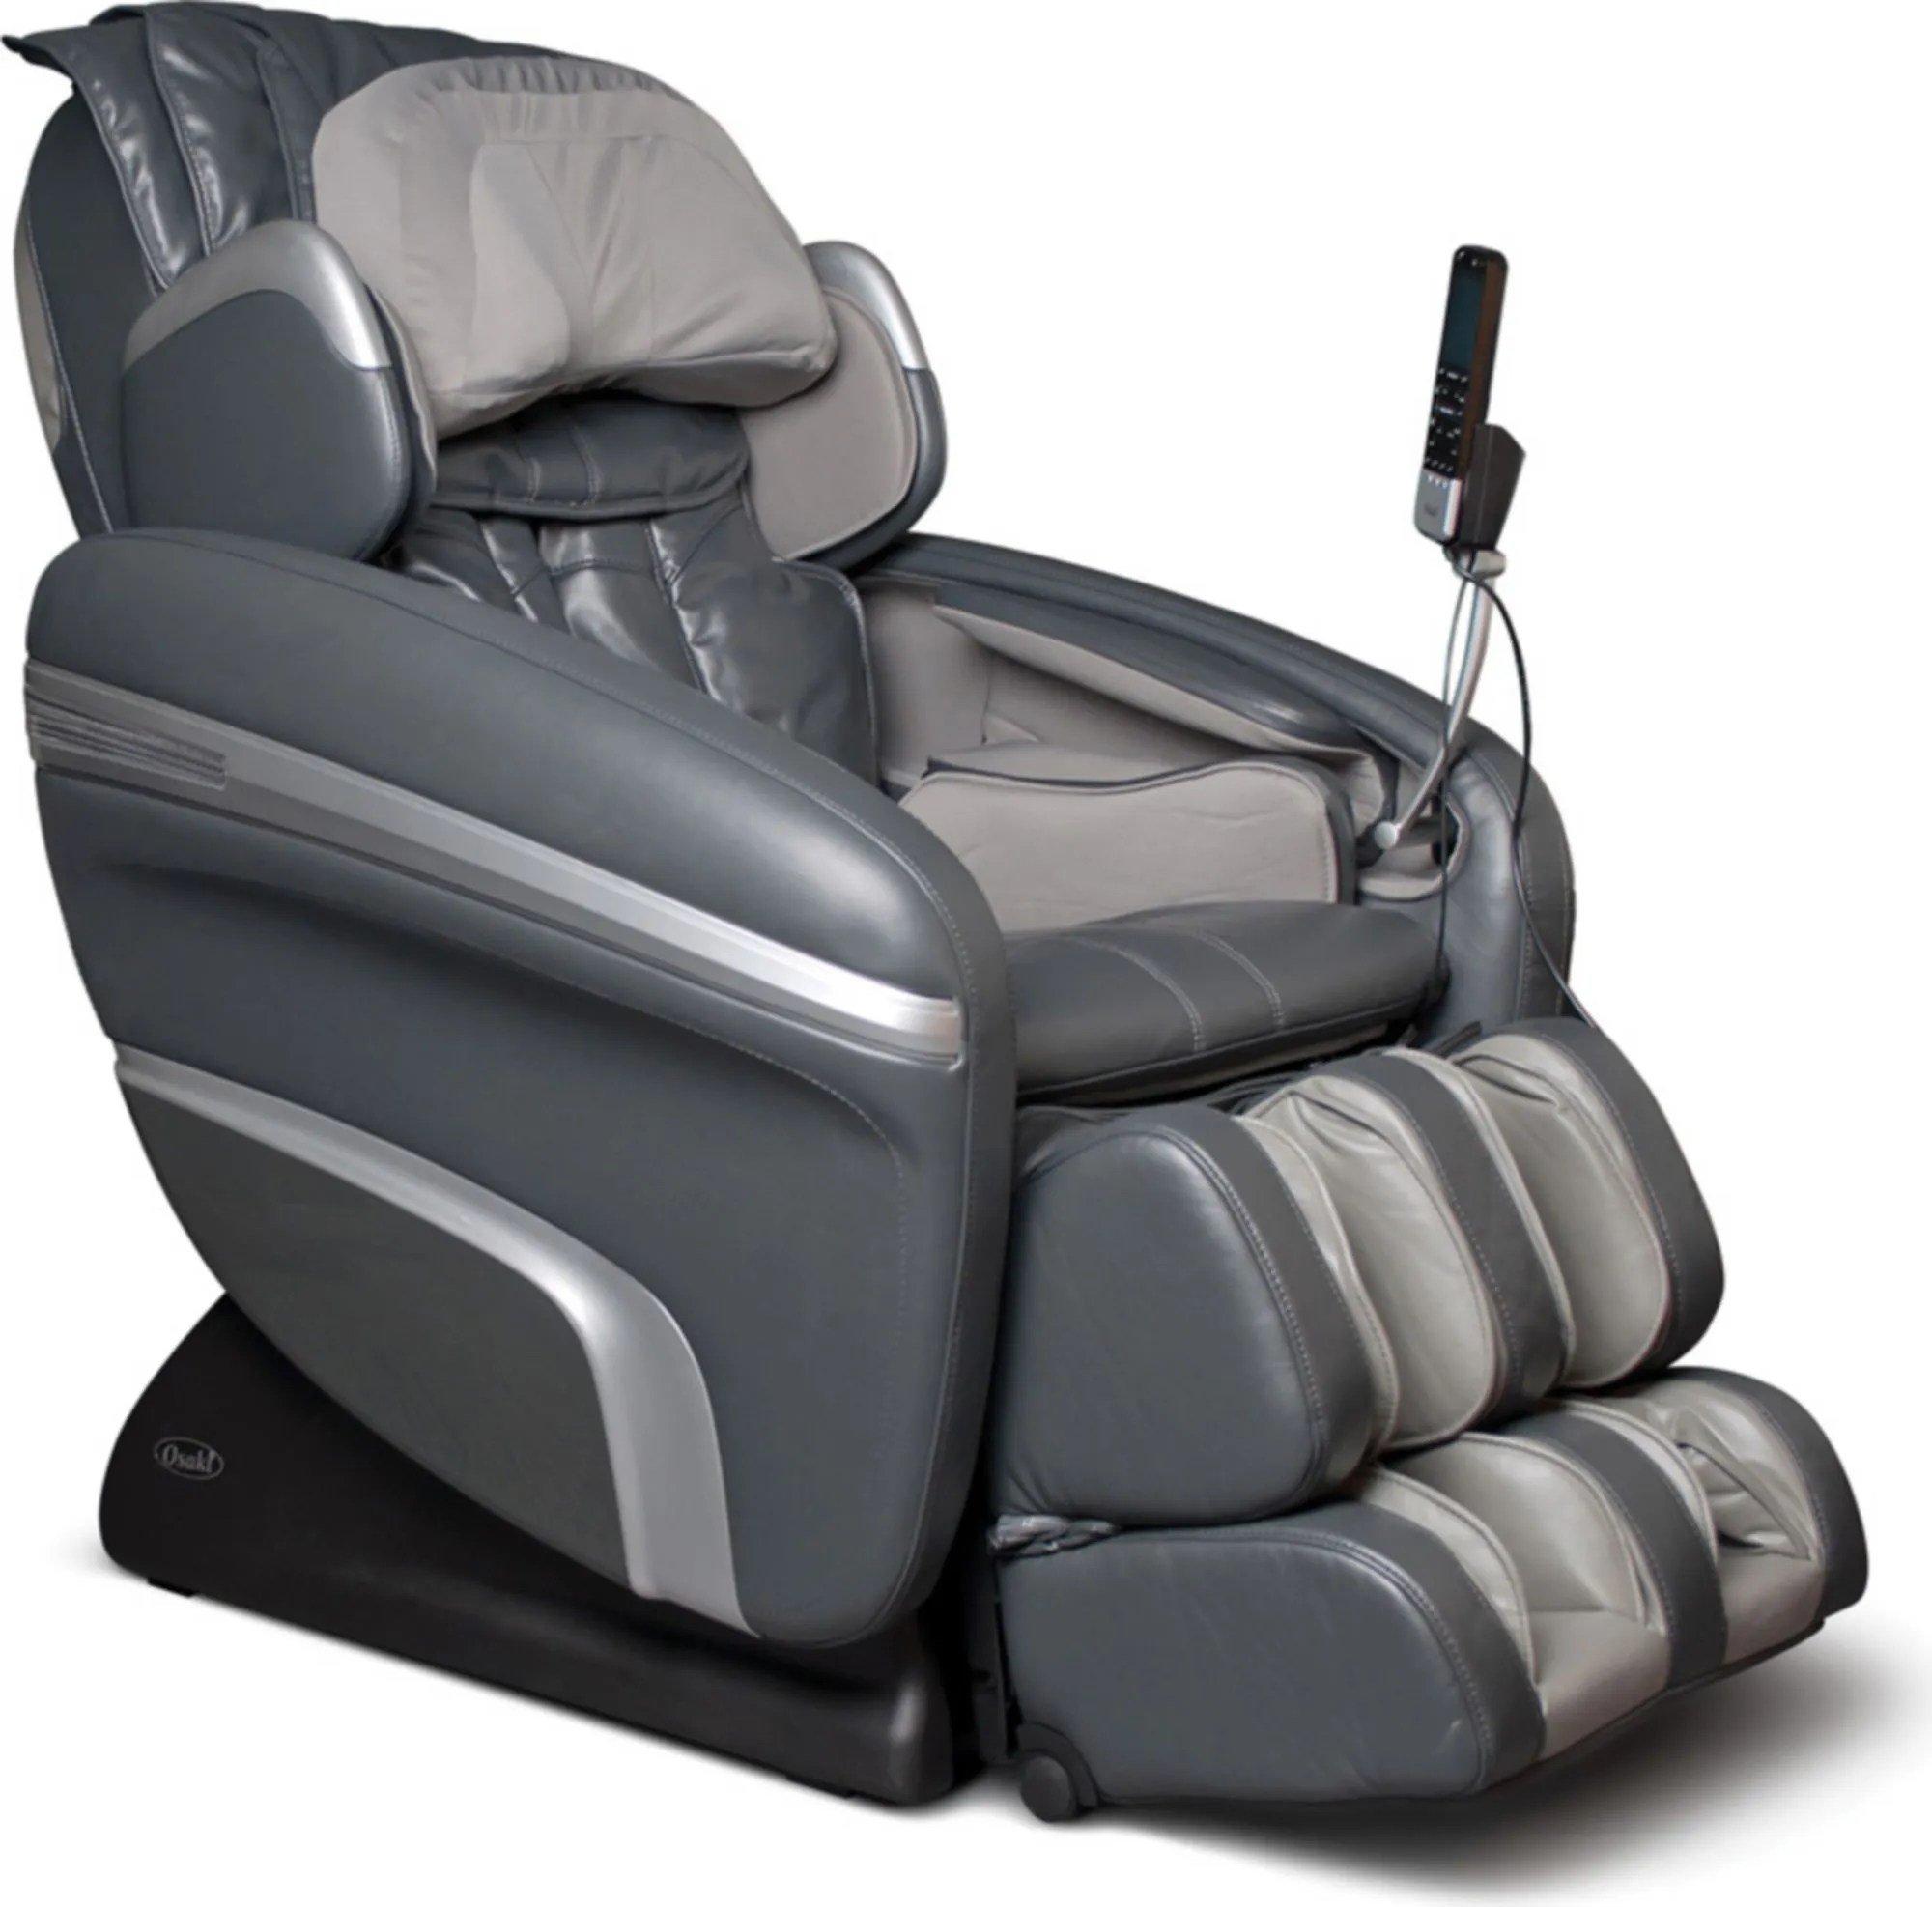 Massage Chair For Car Unique Massage Chair For Car Rtty1 Rtty1